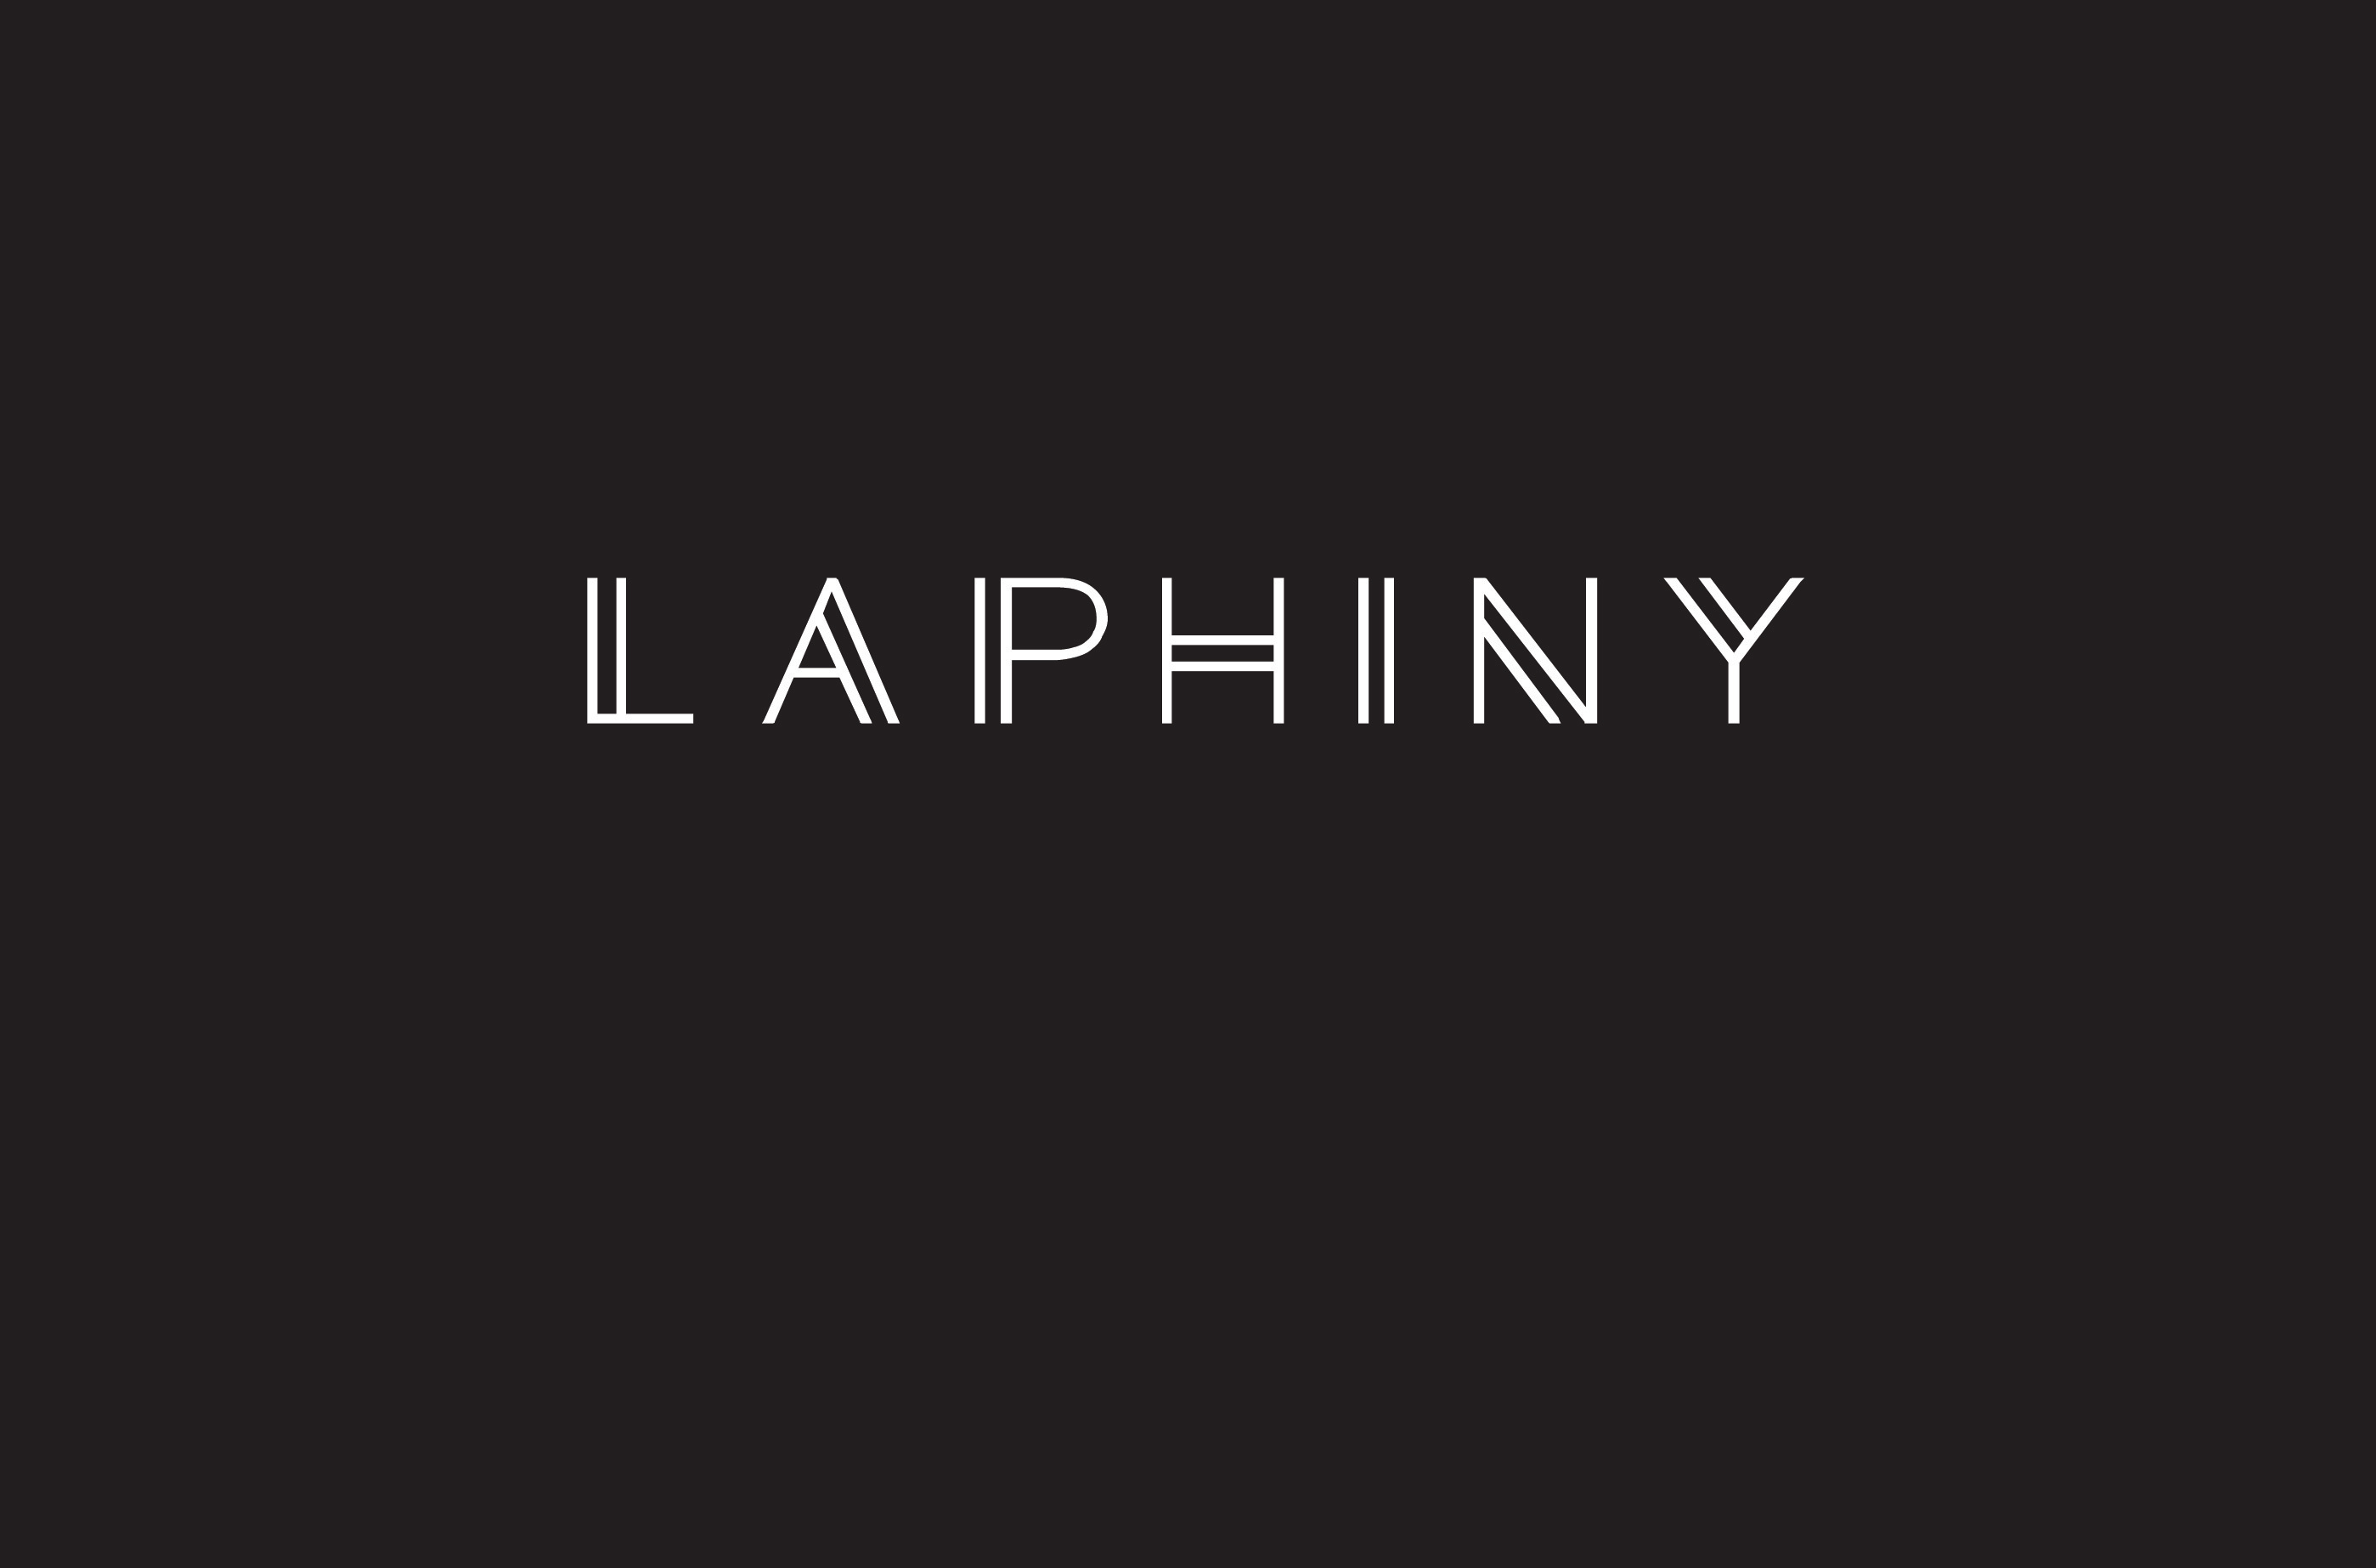 LAPHINY LOGO COLLECTION